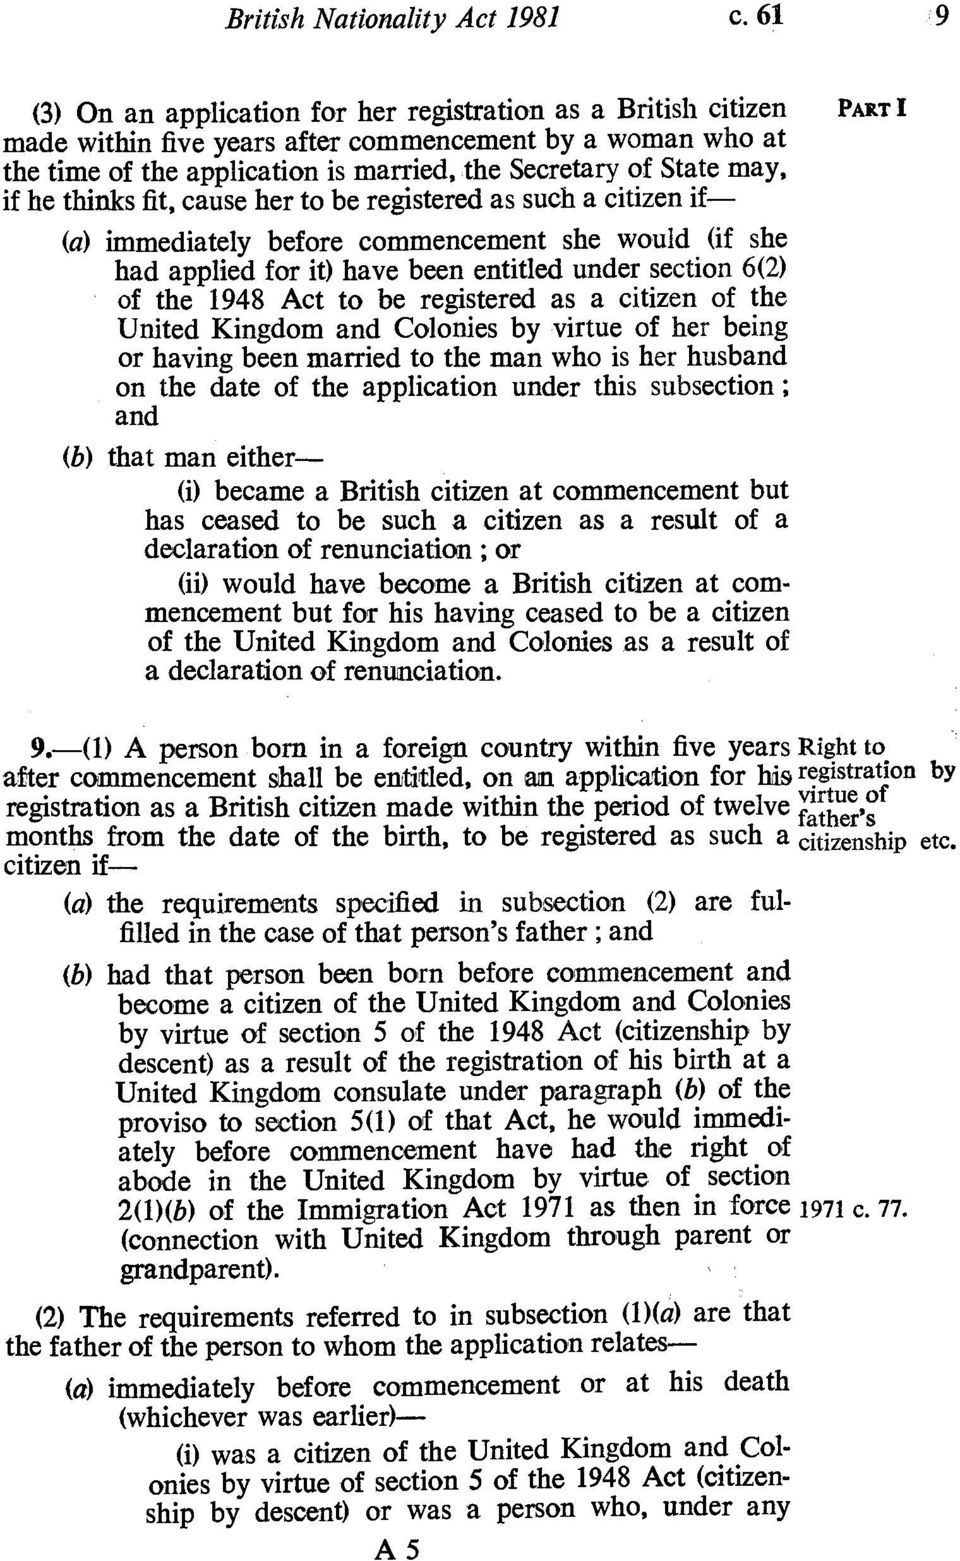 may, if he thinks fit, cause her to be registered as such a citizen if- (a) immediately before commencement she would (if she had applied for it) have been entitled under section 6(2) of the 1948 Act